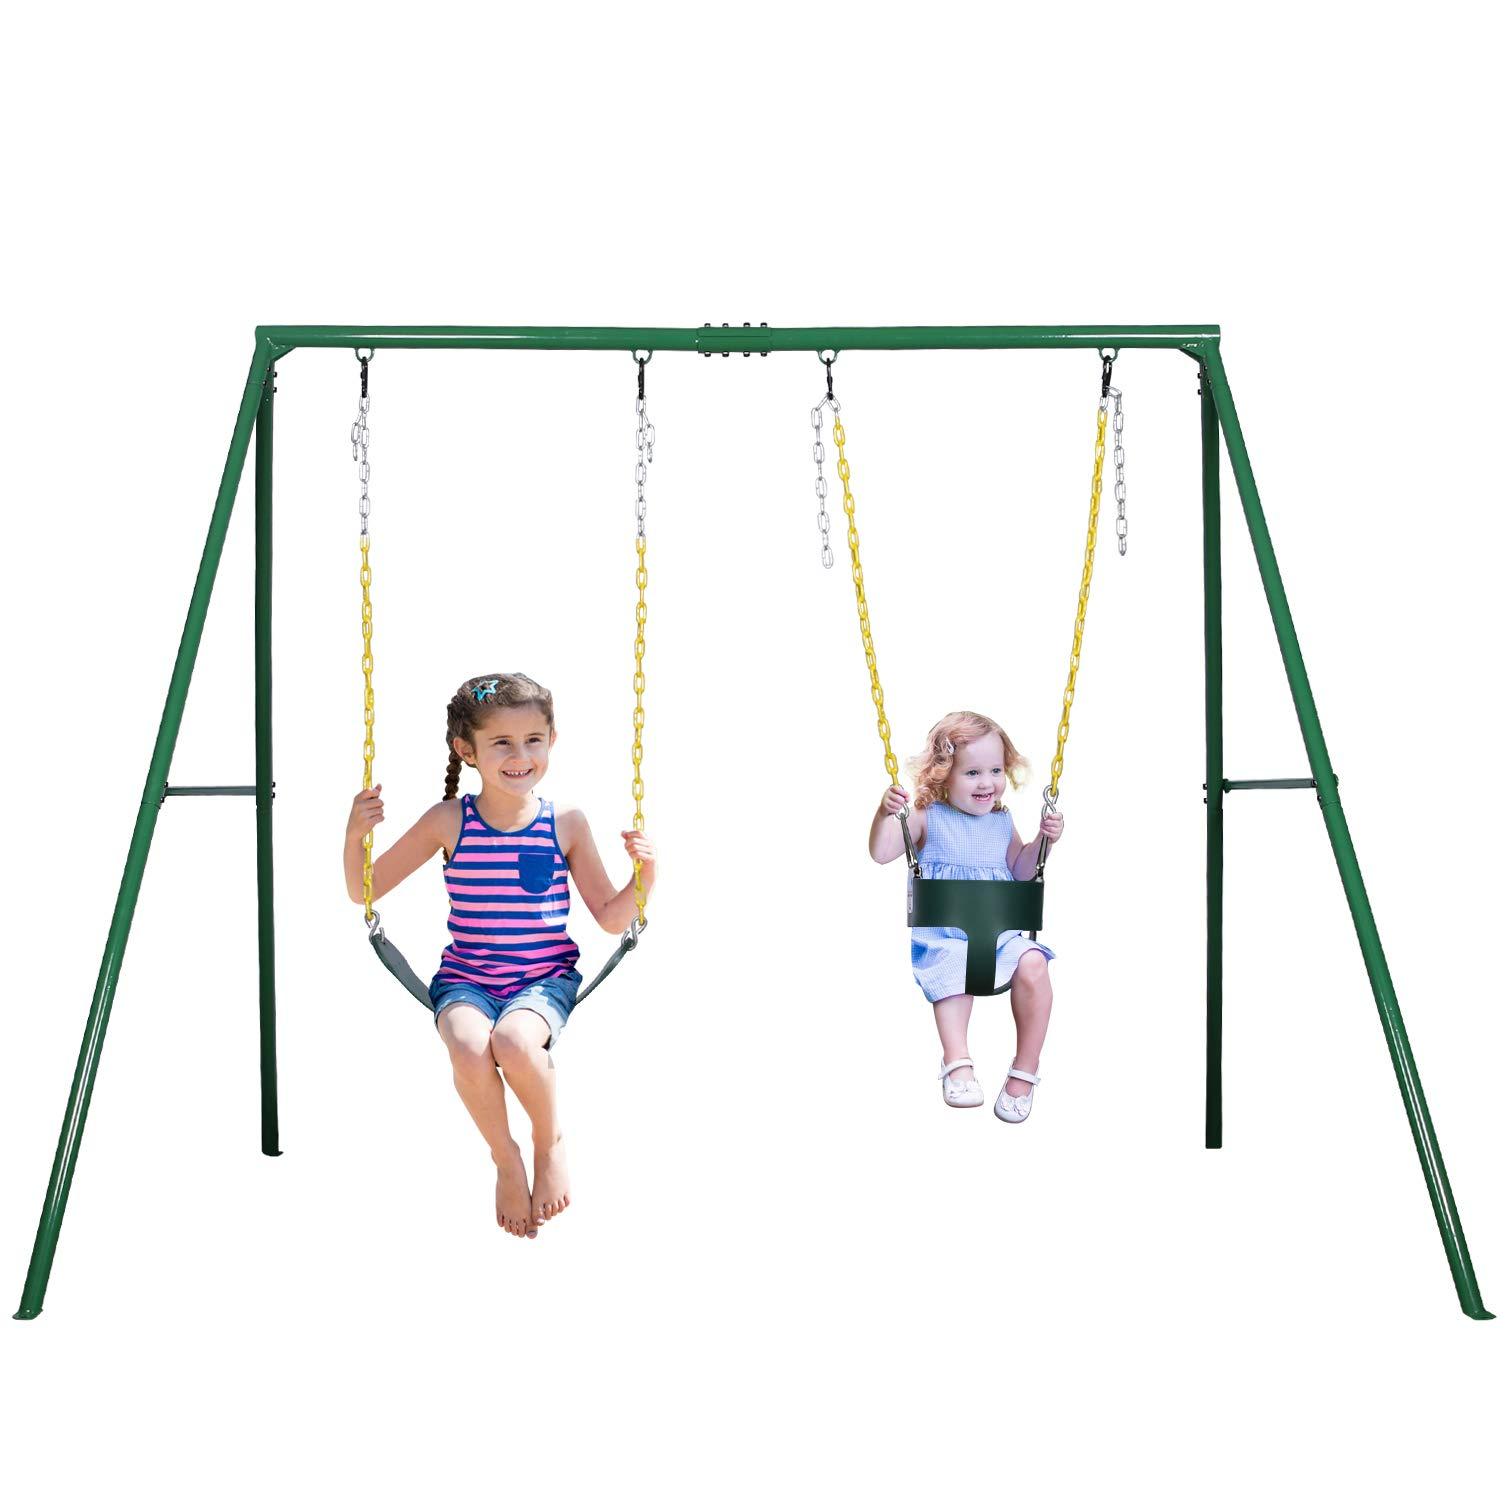 Trekassy 2 Seat Swing Set, 1 Belt Swing Seat and 1 Toddler Swing Seat with 440lbs Heavy Duty A-Frame Metal Swing Stand by Trekassy